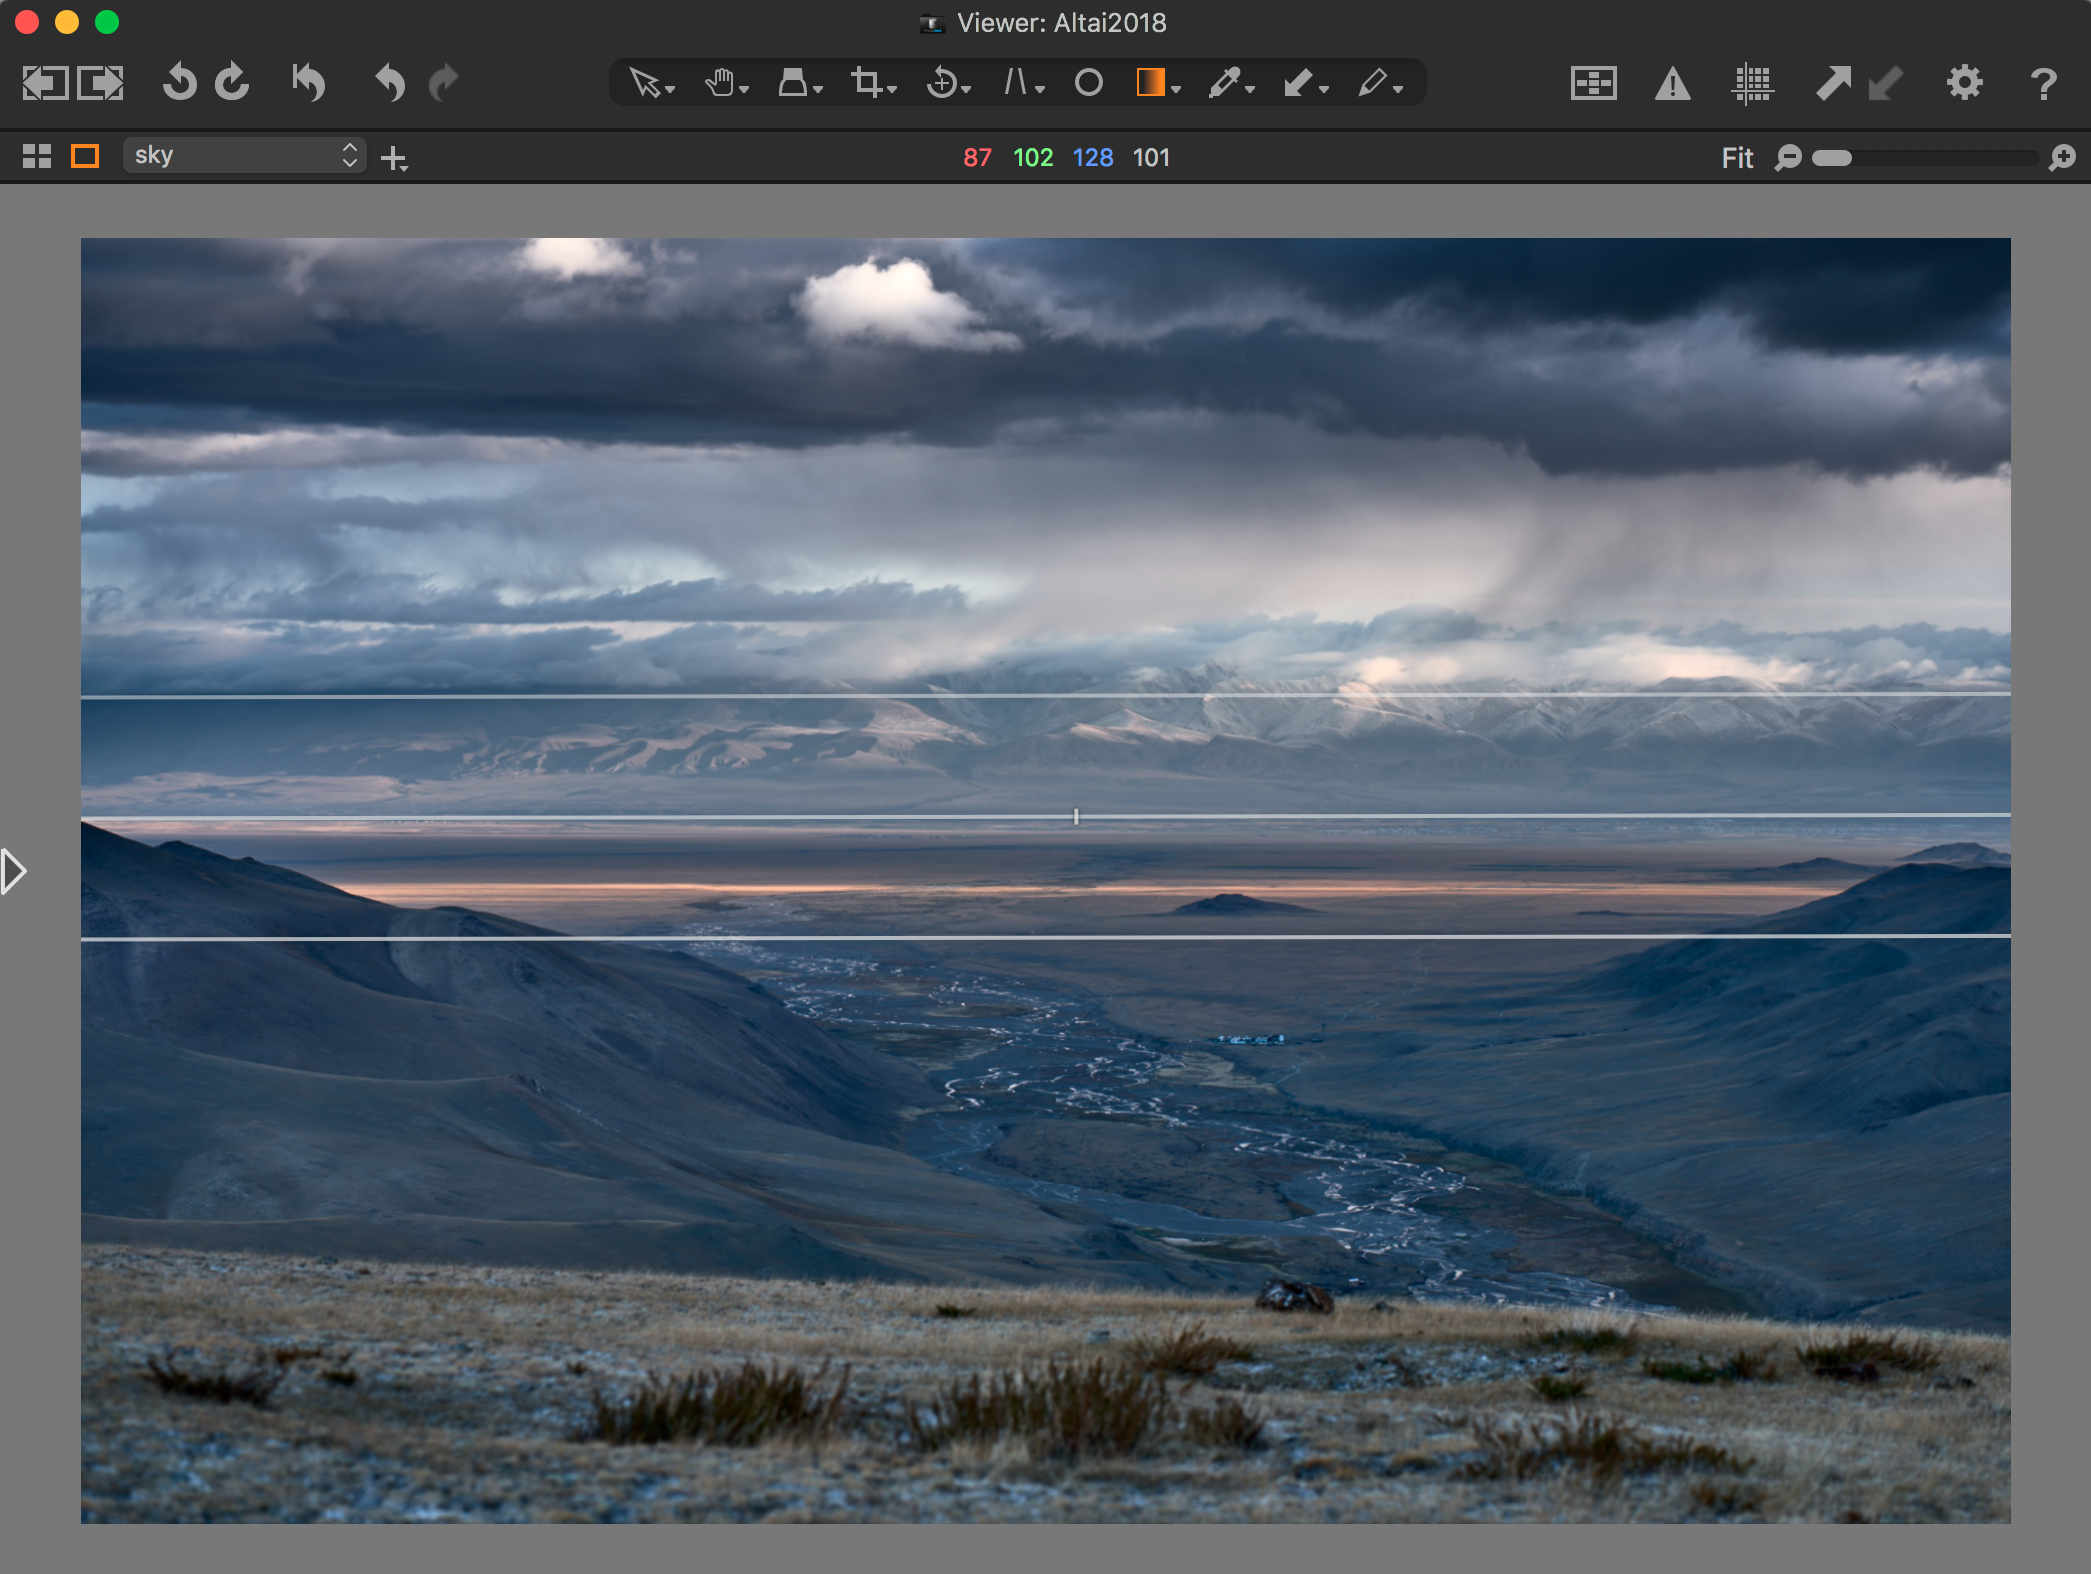 capture one pro 12 review, viewer, linear gradient mask tool